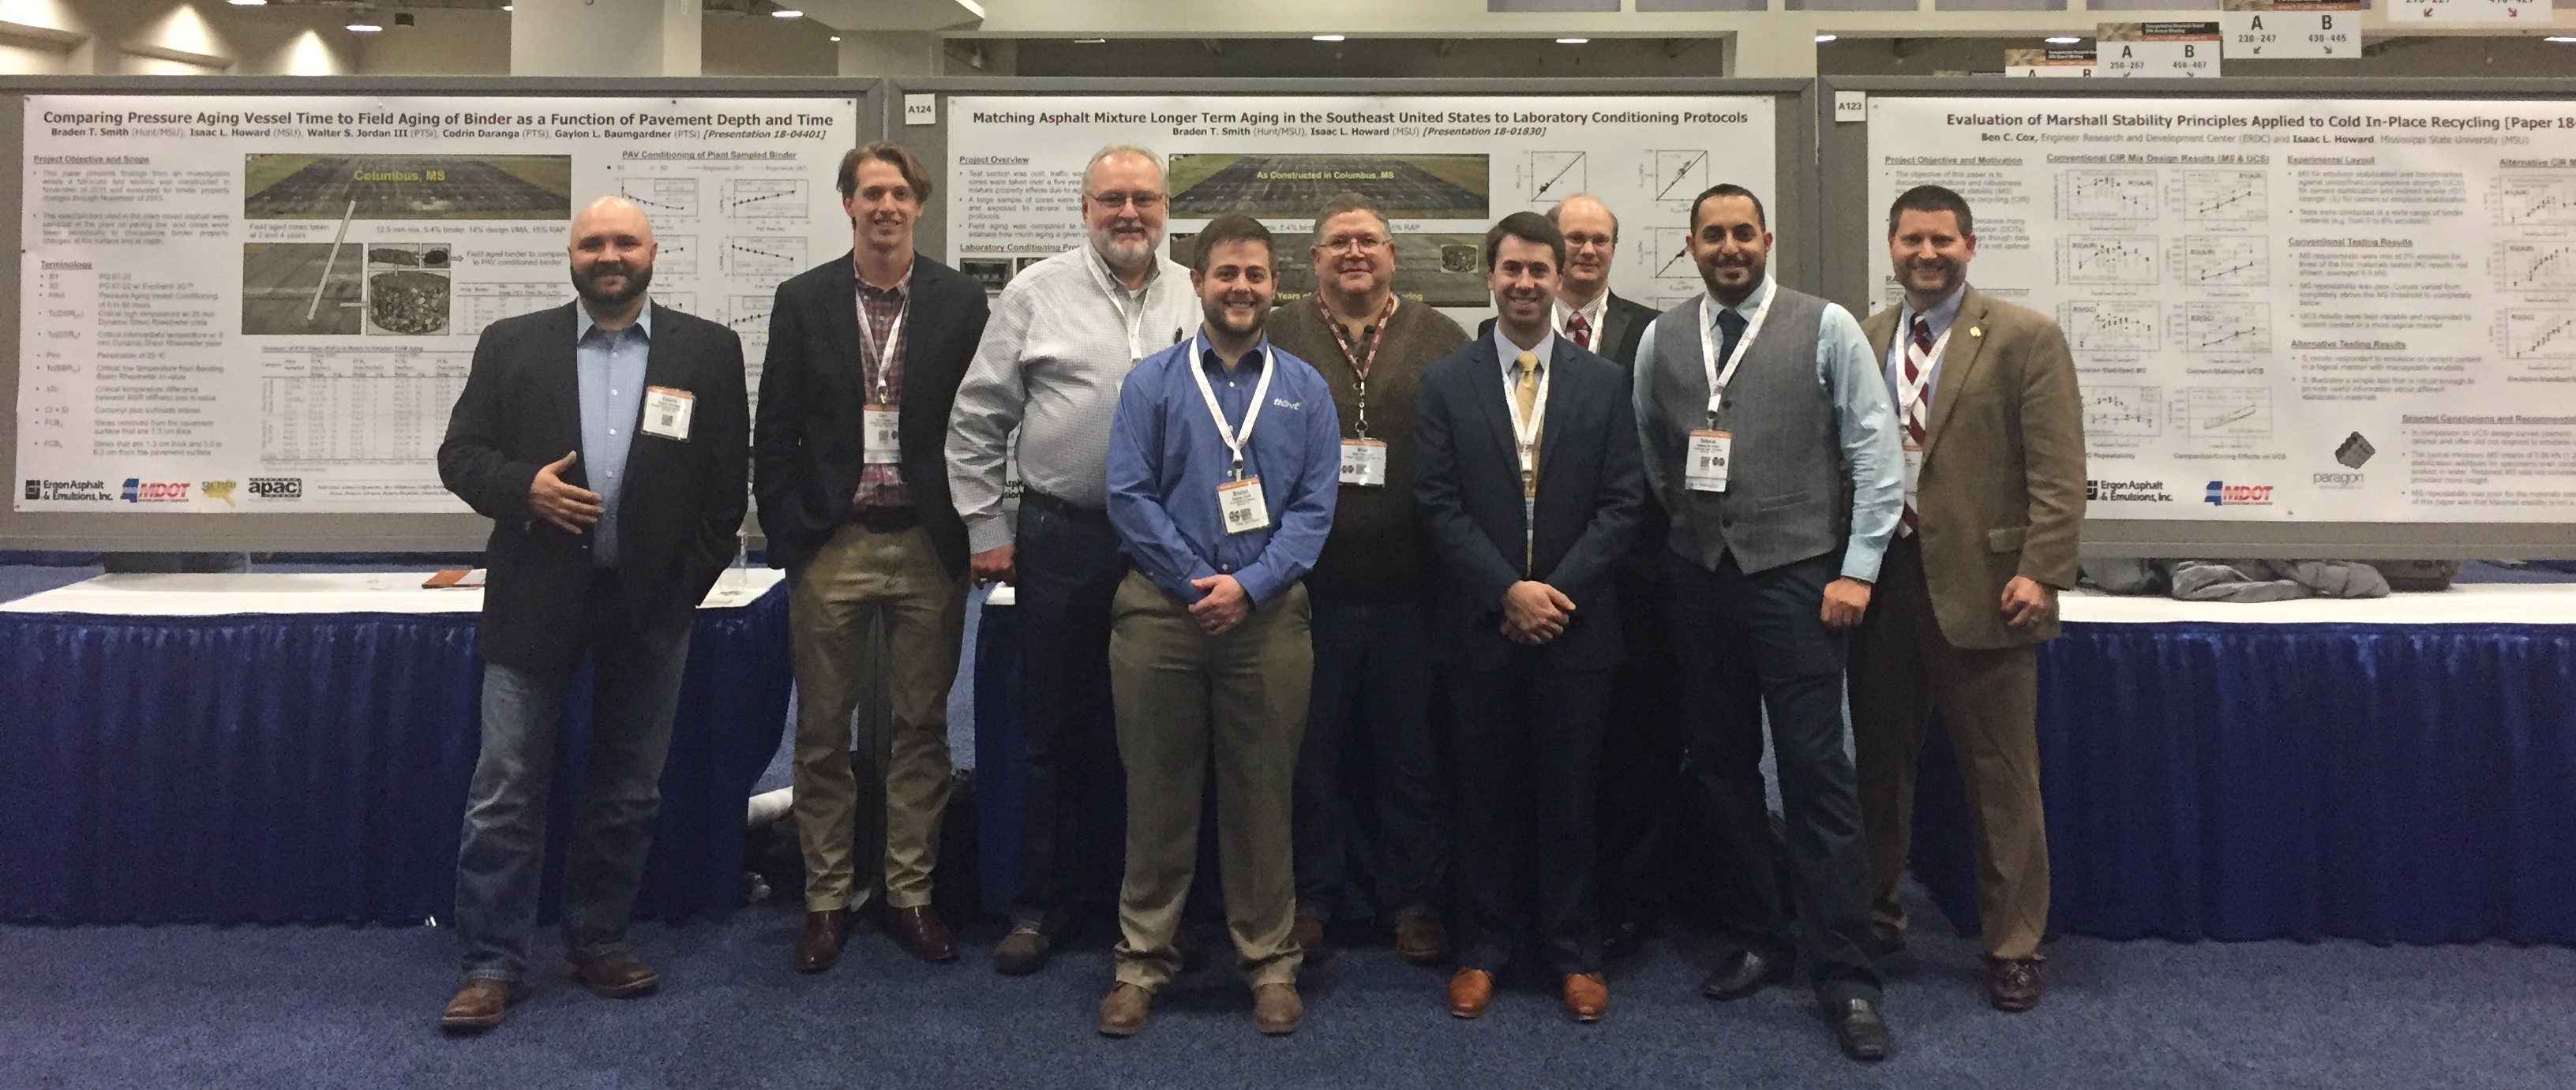 (2018) Transportation Research Board (TRB) Annual Meeting – Washington, D.C.